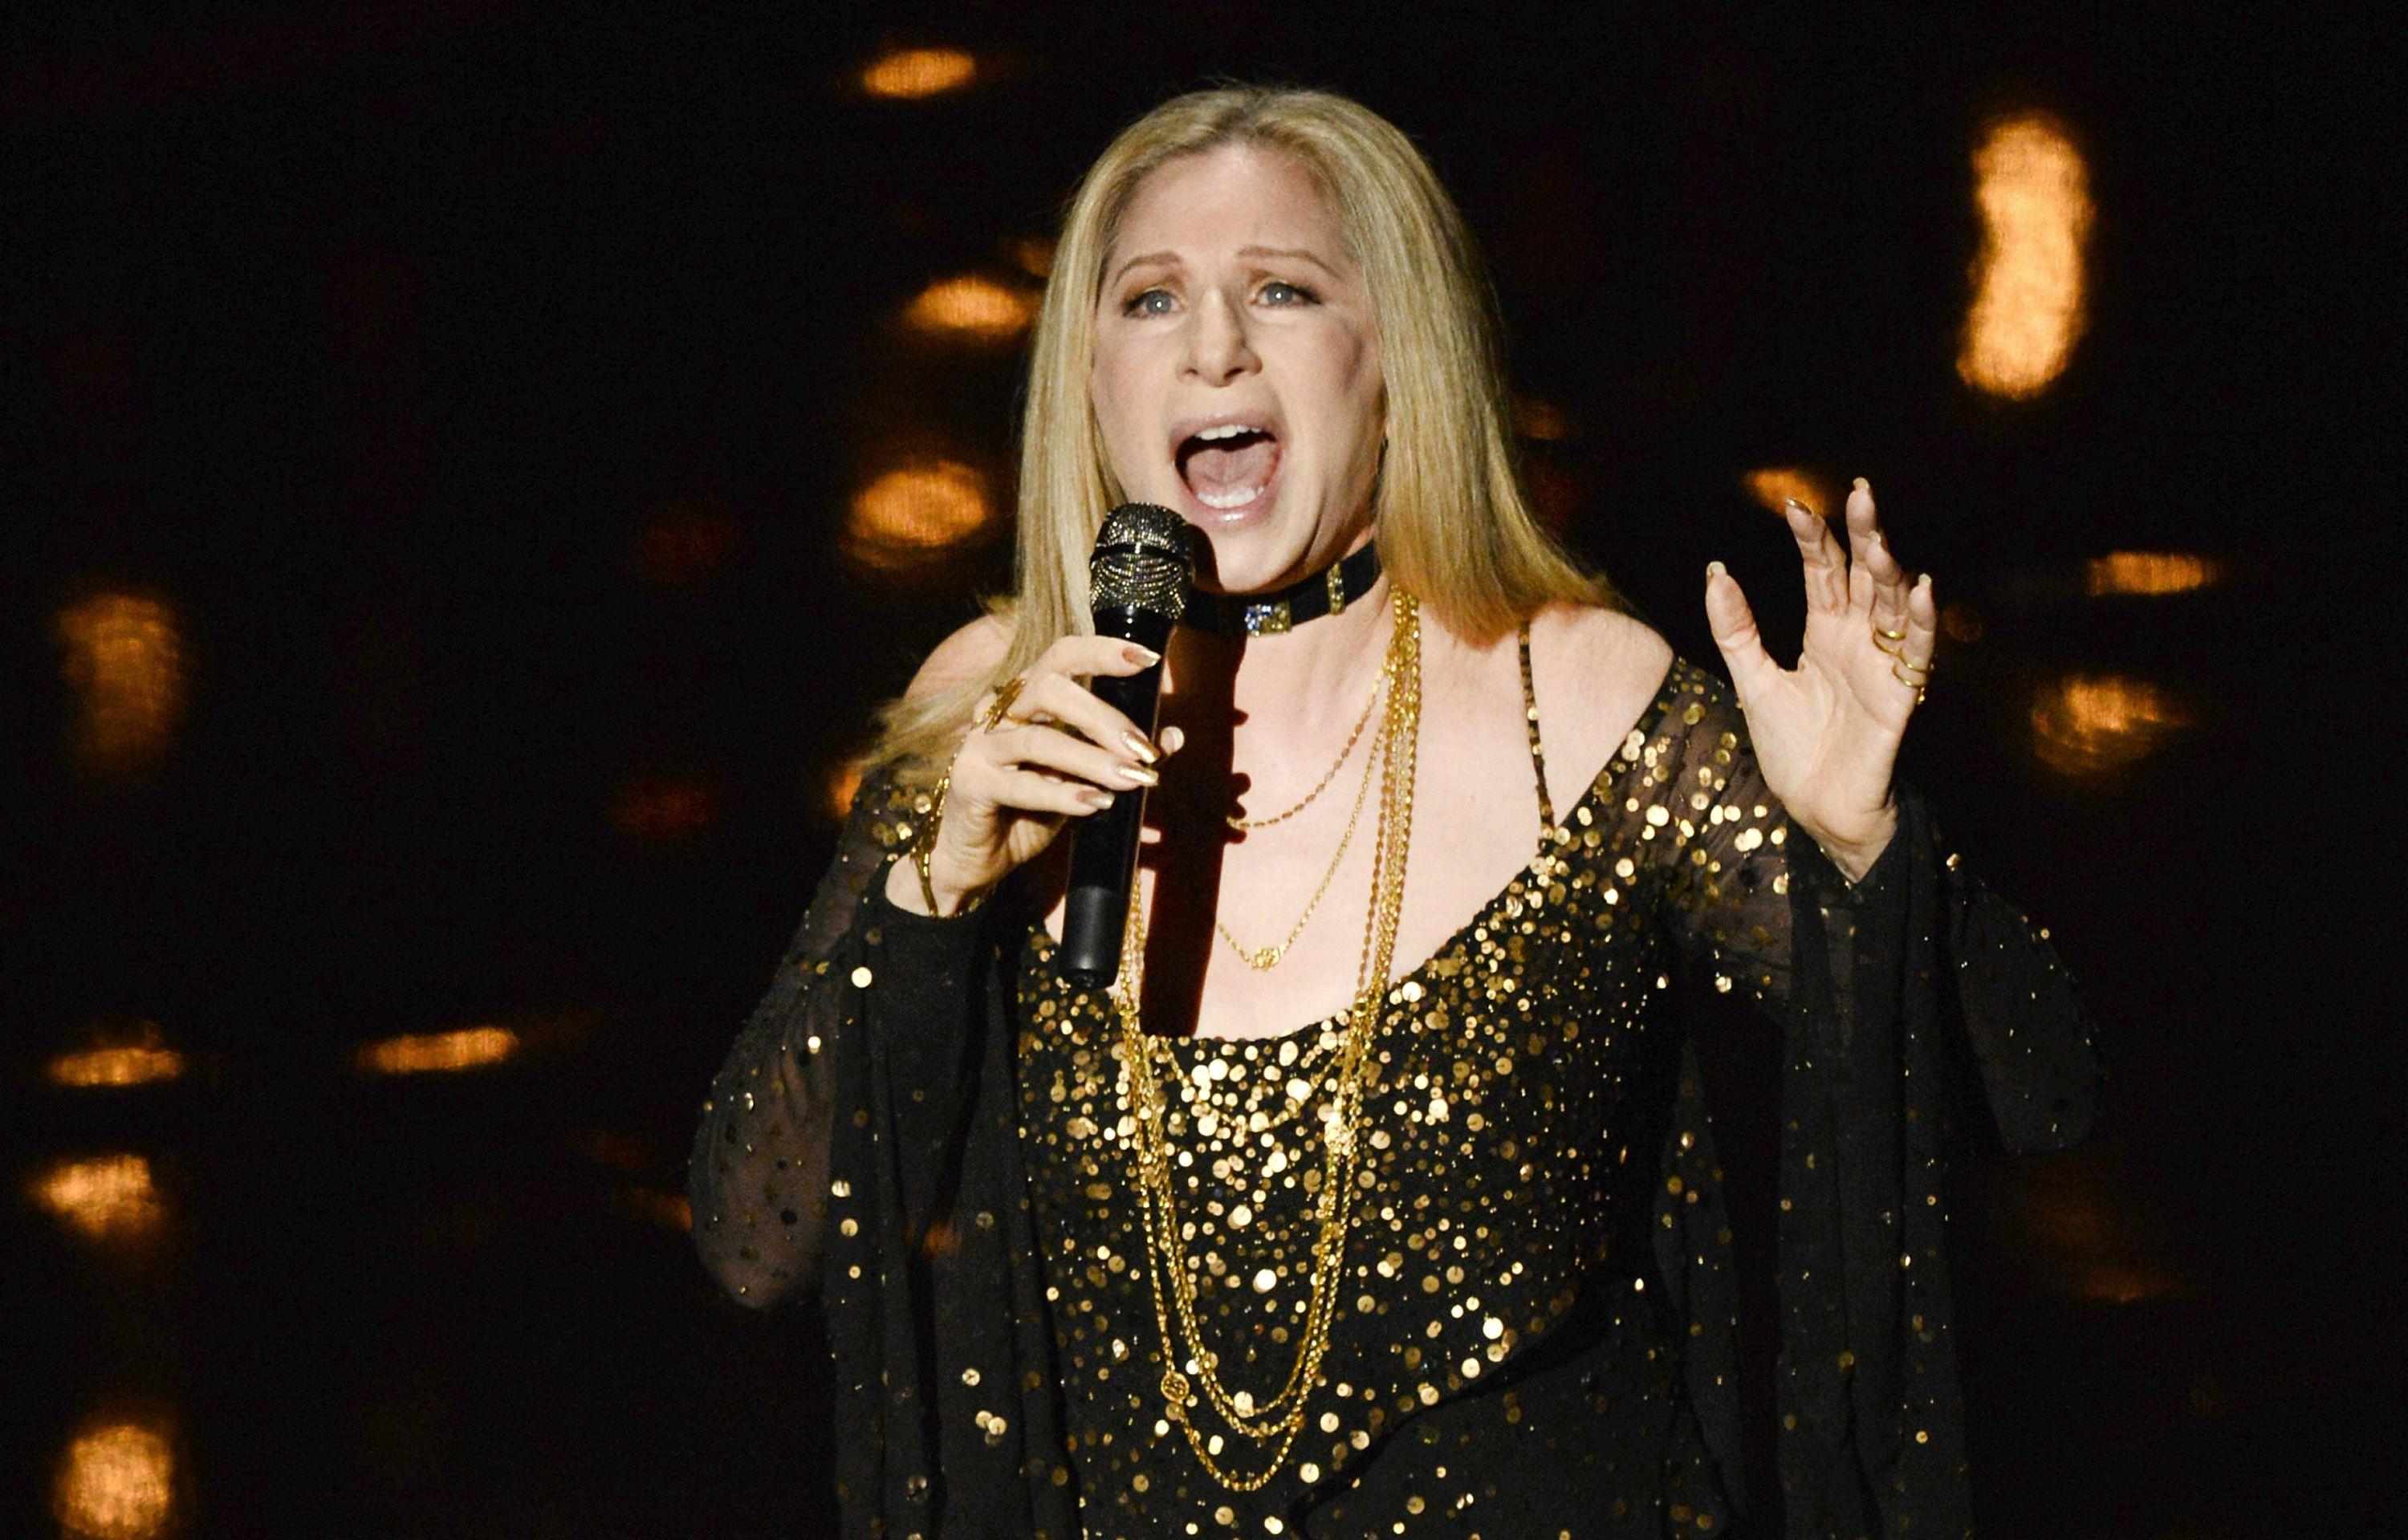 Barbra Streisand To Receive Cinematographers' Board Of Governors